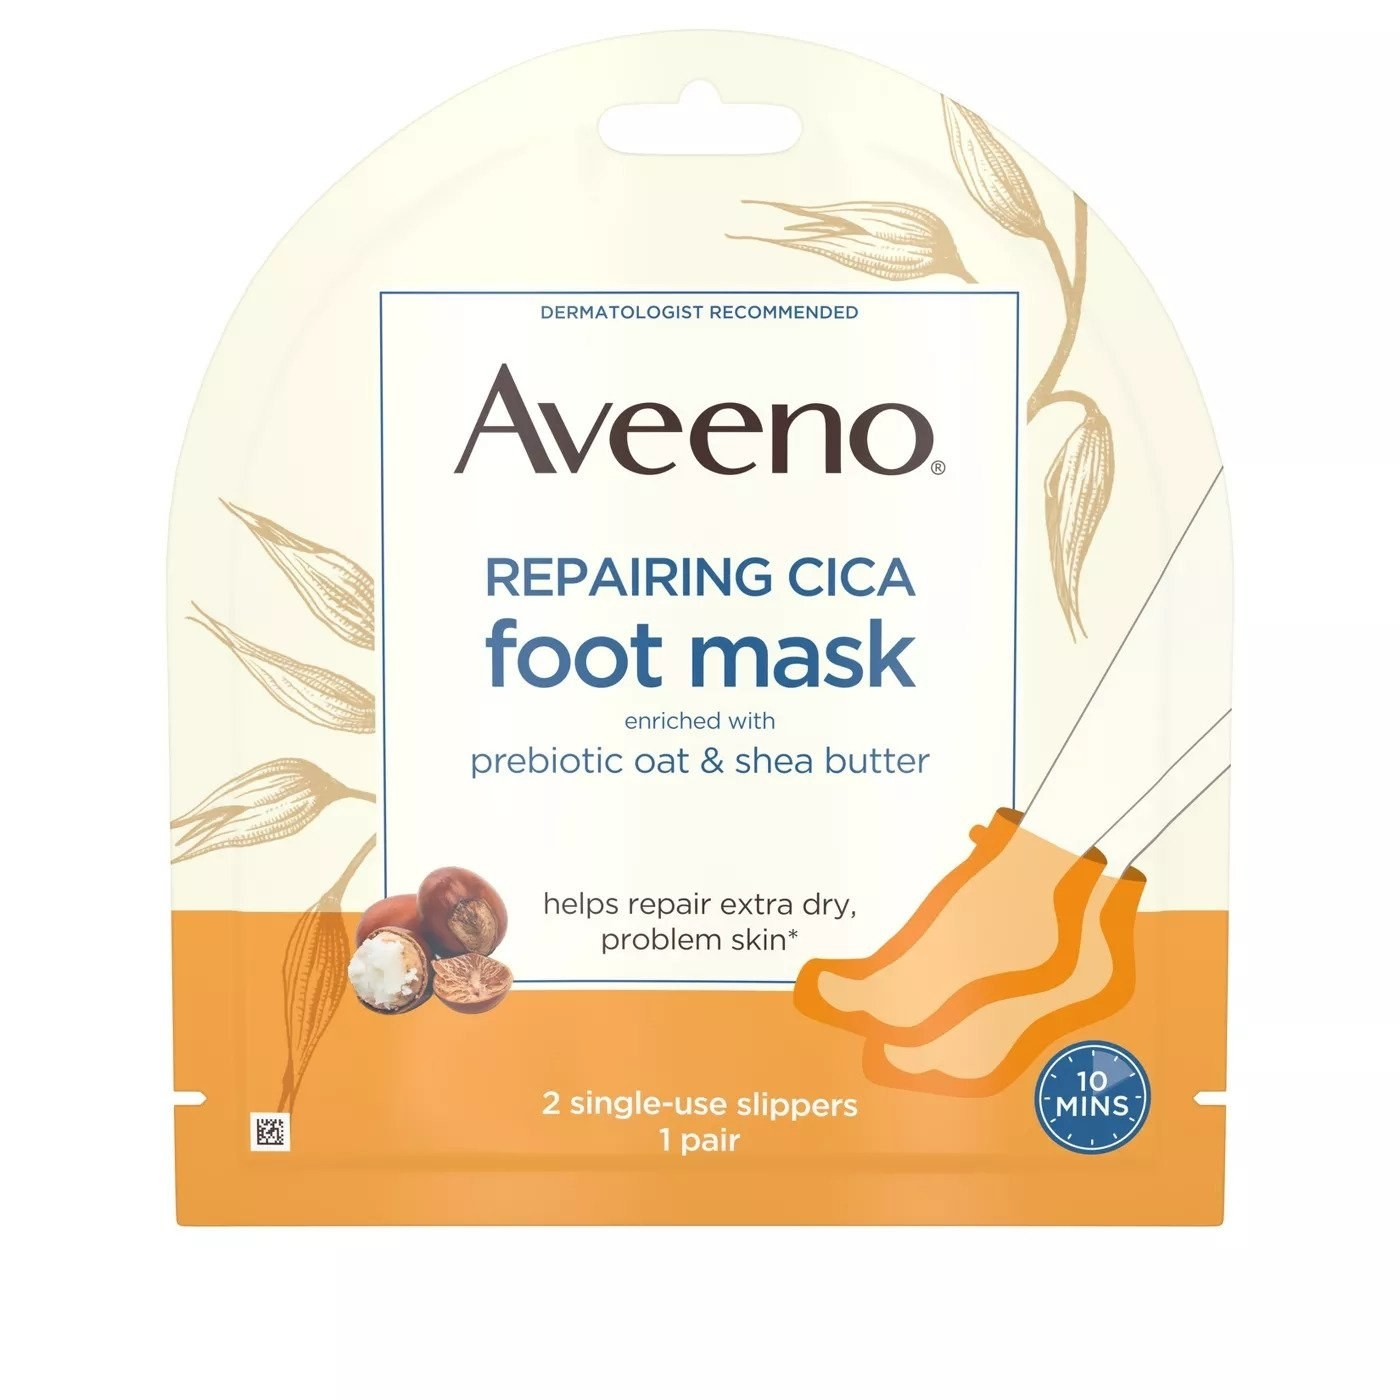 the foot mask